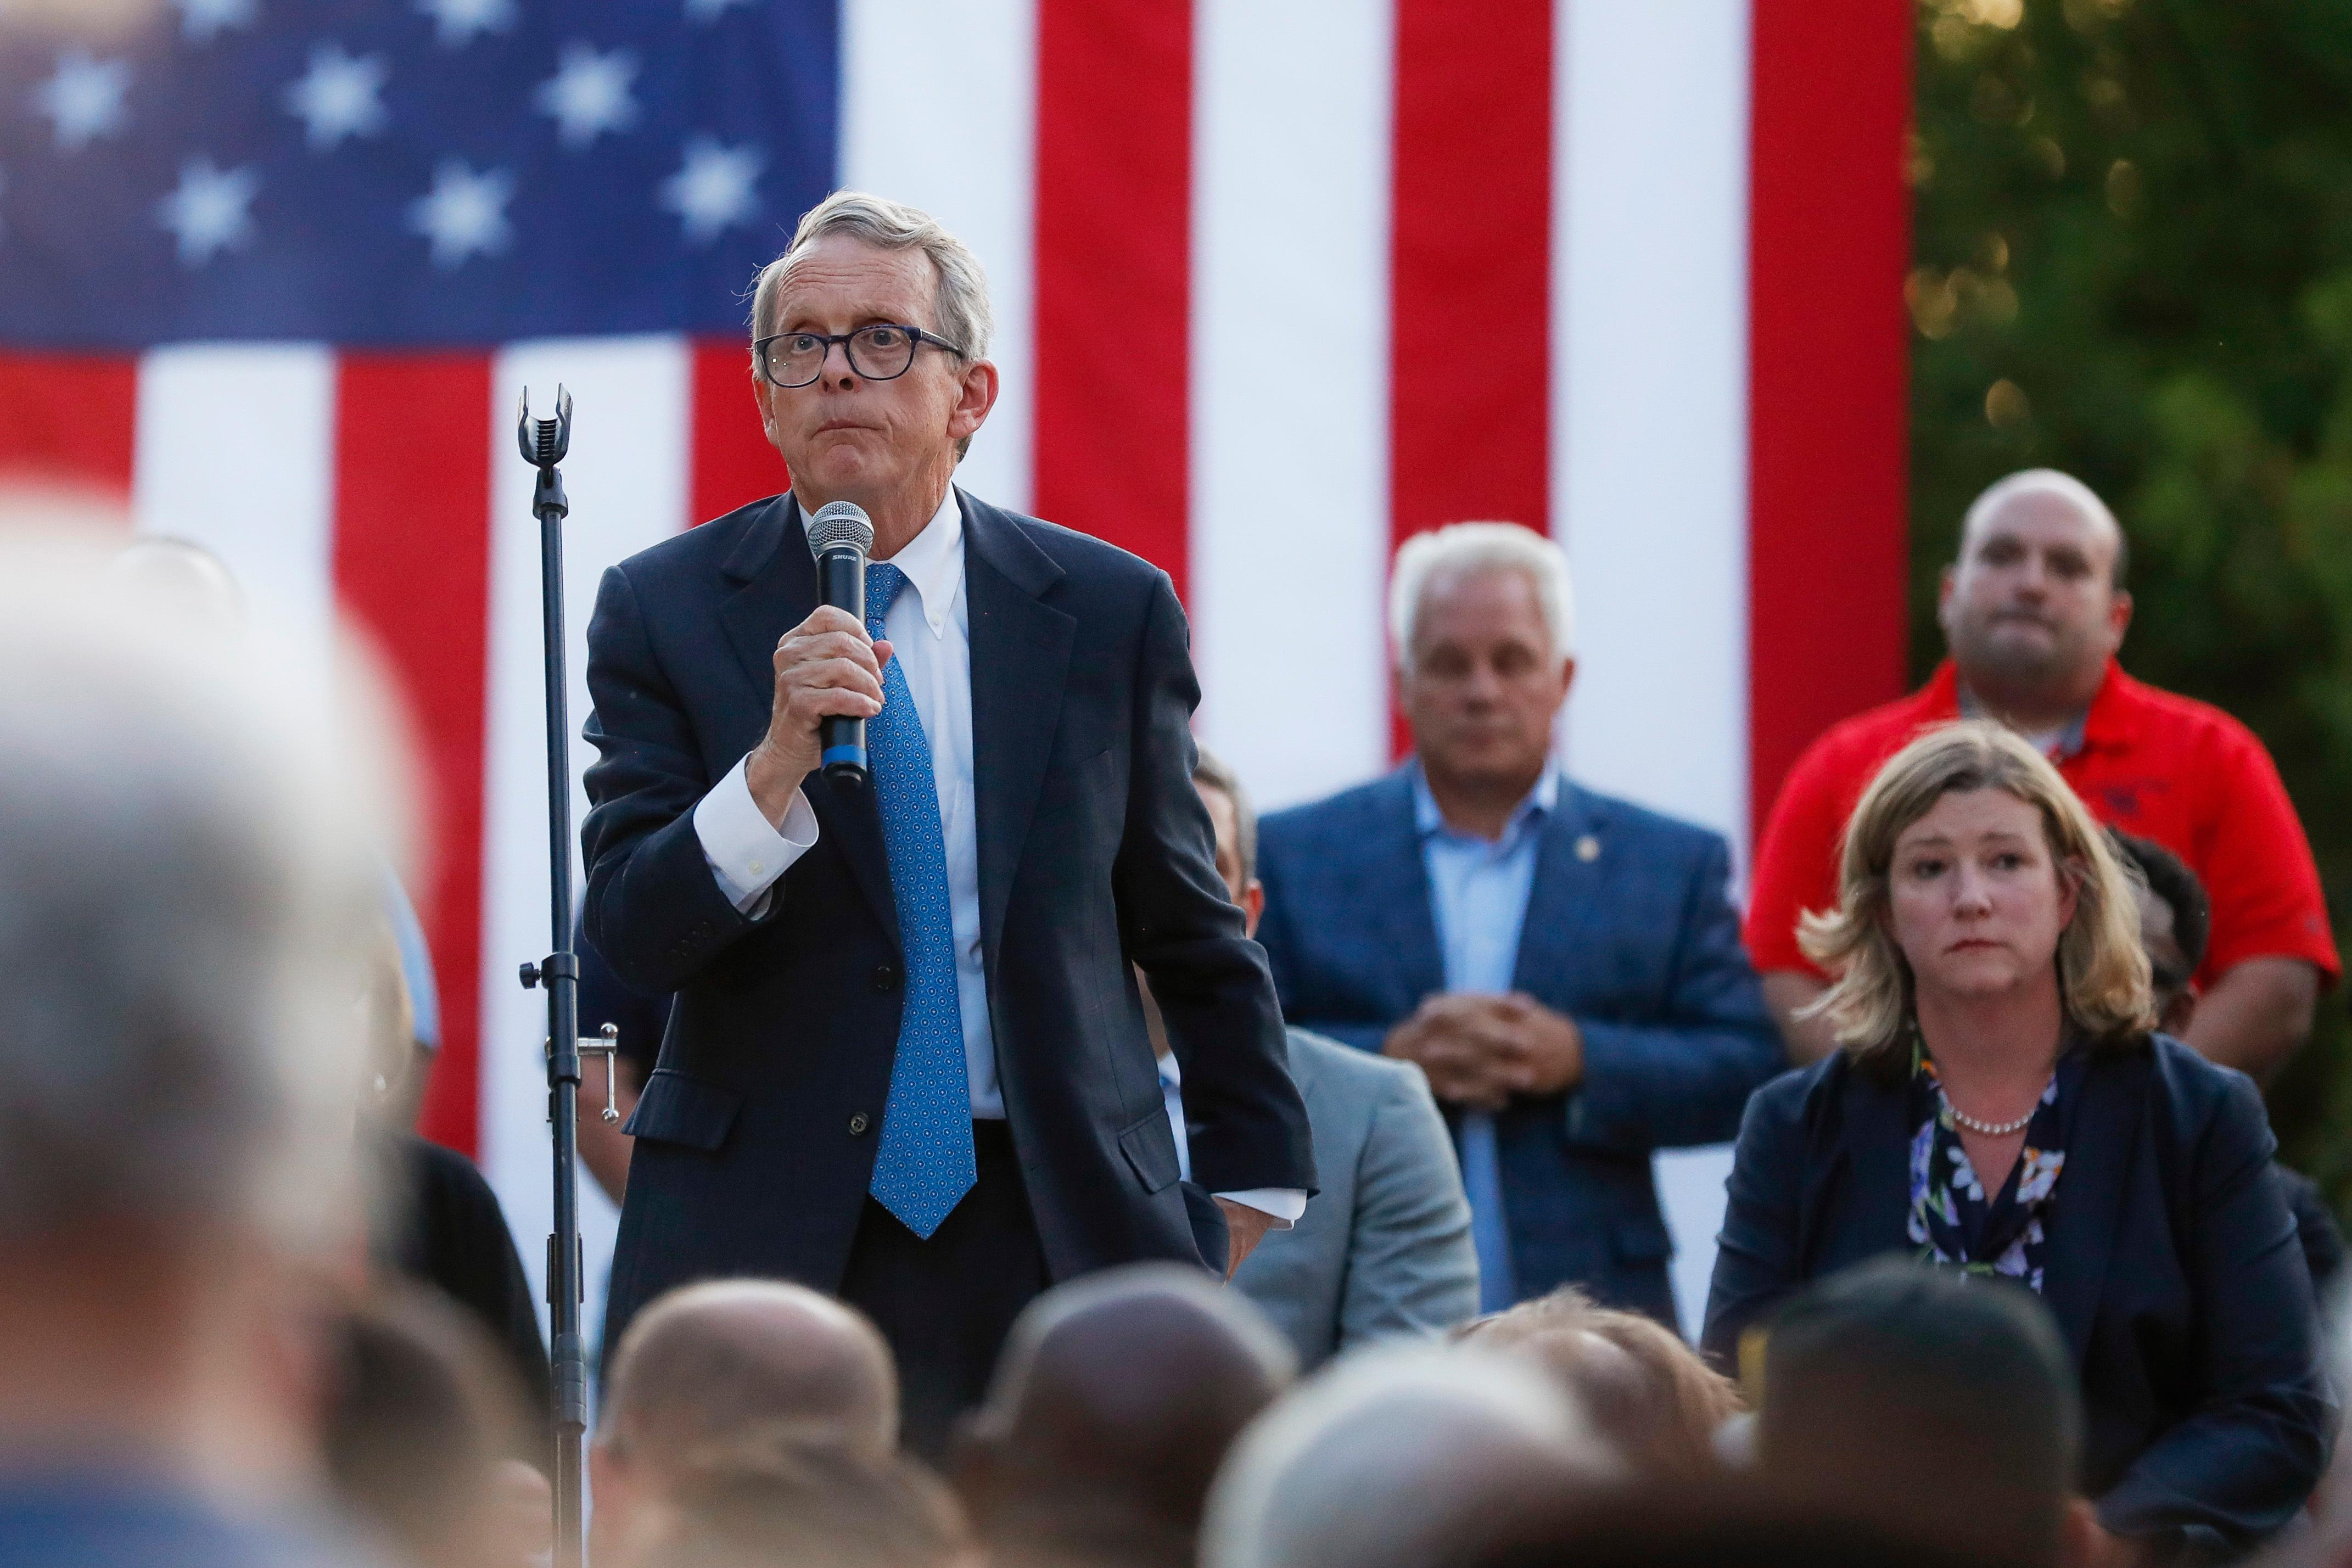 Ohio Gov. Mike DeWine, left, speaks alongside Dayton Mayor Nan Whaley, right, during a vigil at the scene of a mass shooting, Sunday, Aug. 4, 2019, in Dayton, Ohio. . (AP Photo/John Minchillo)